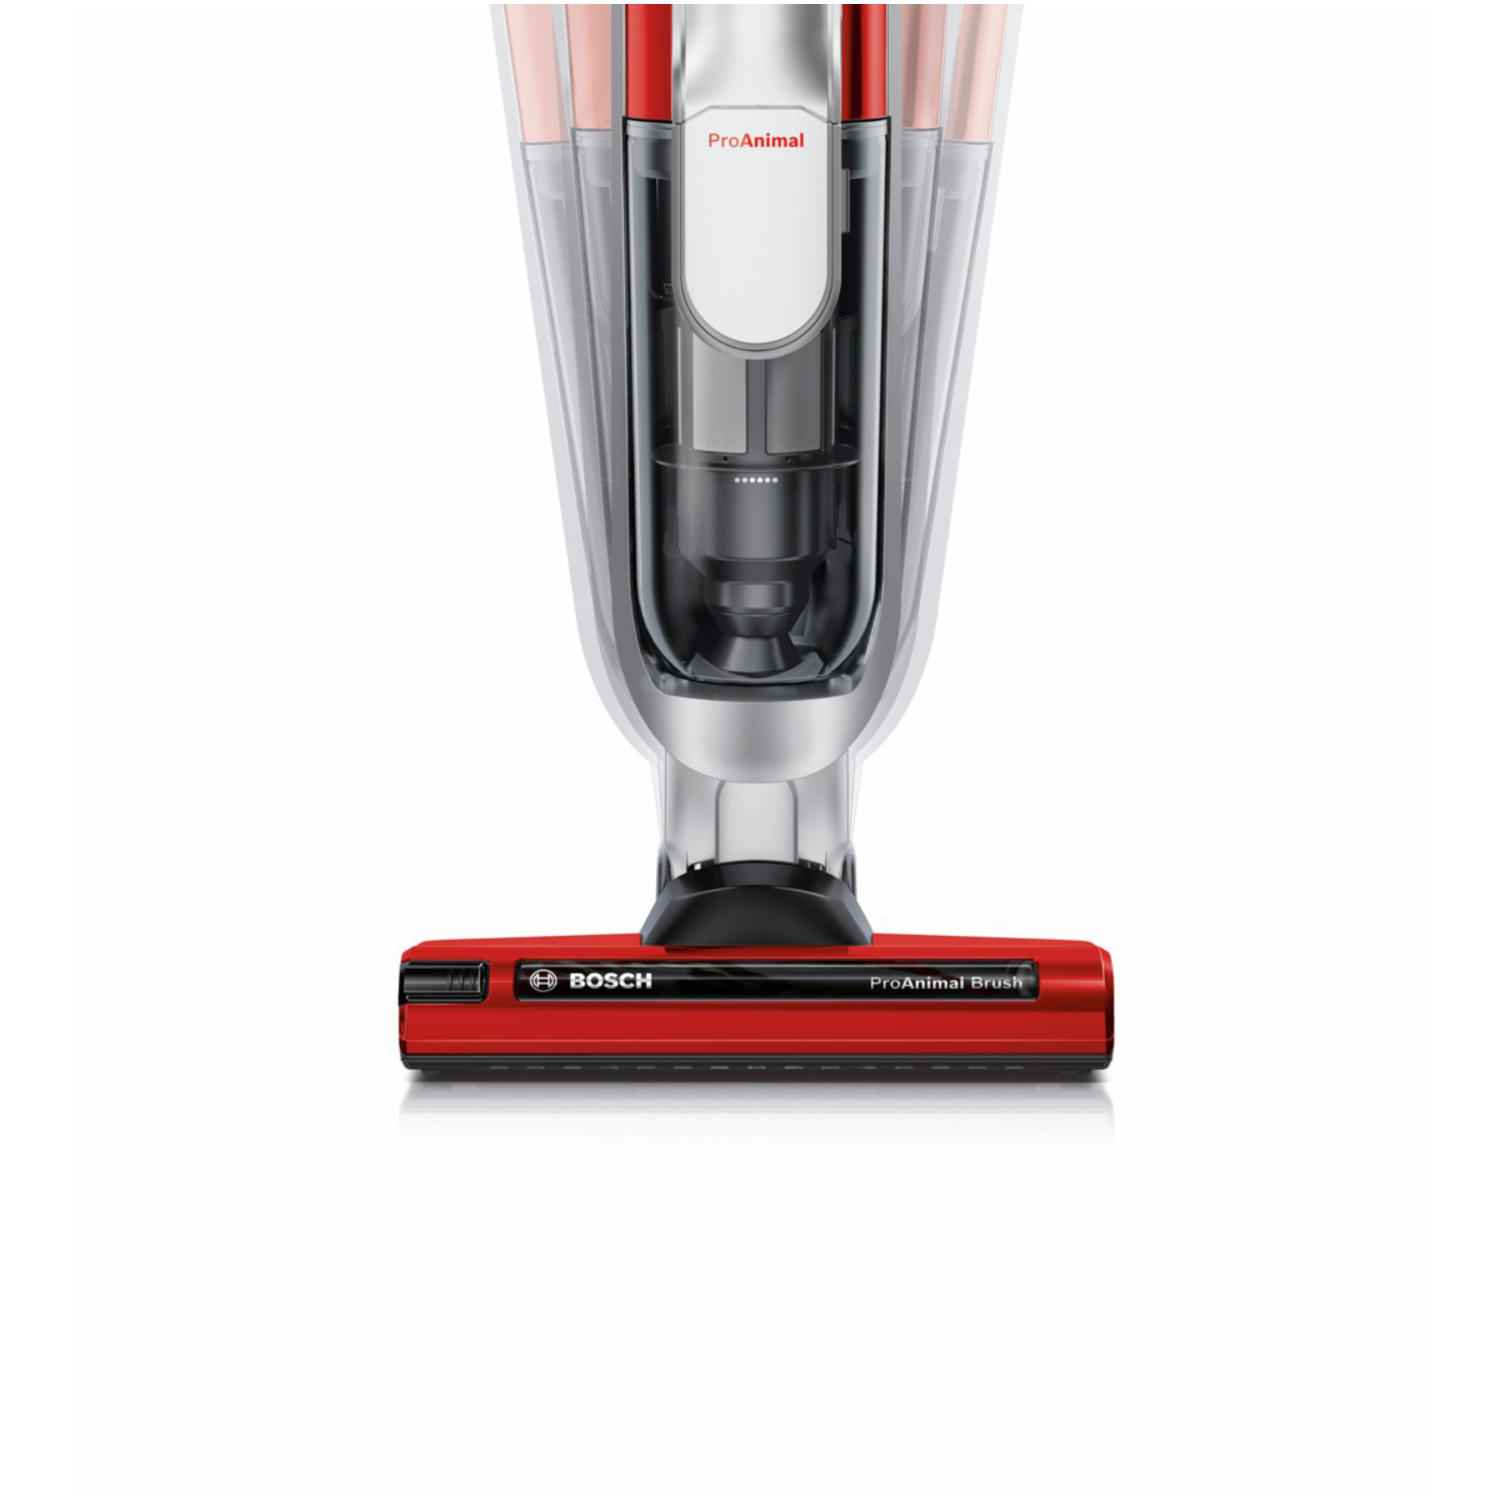 Bosch Bbh65petgb Athlet Cordless Pet Vacuum Cleaner Hbh